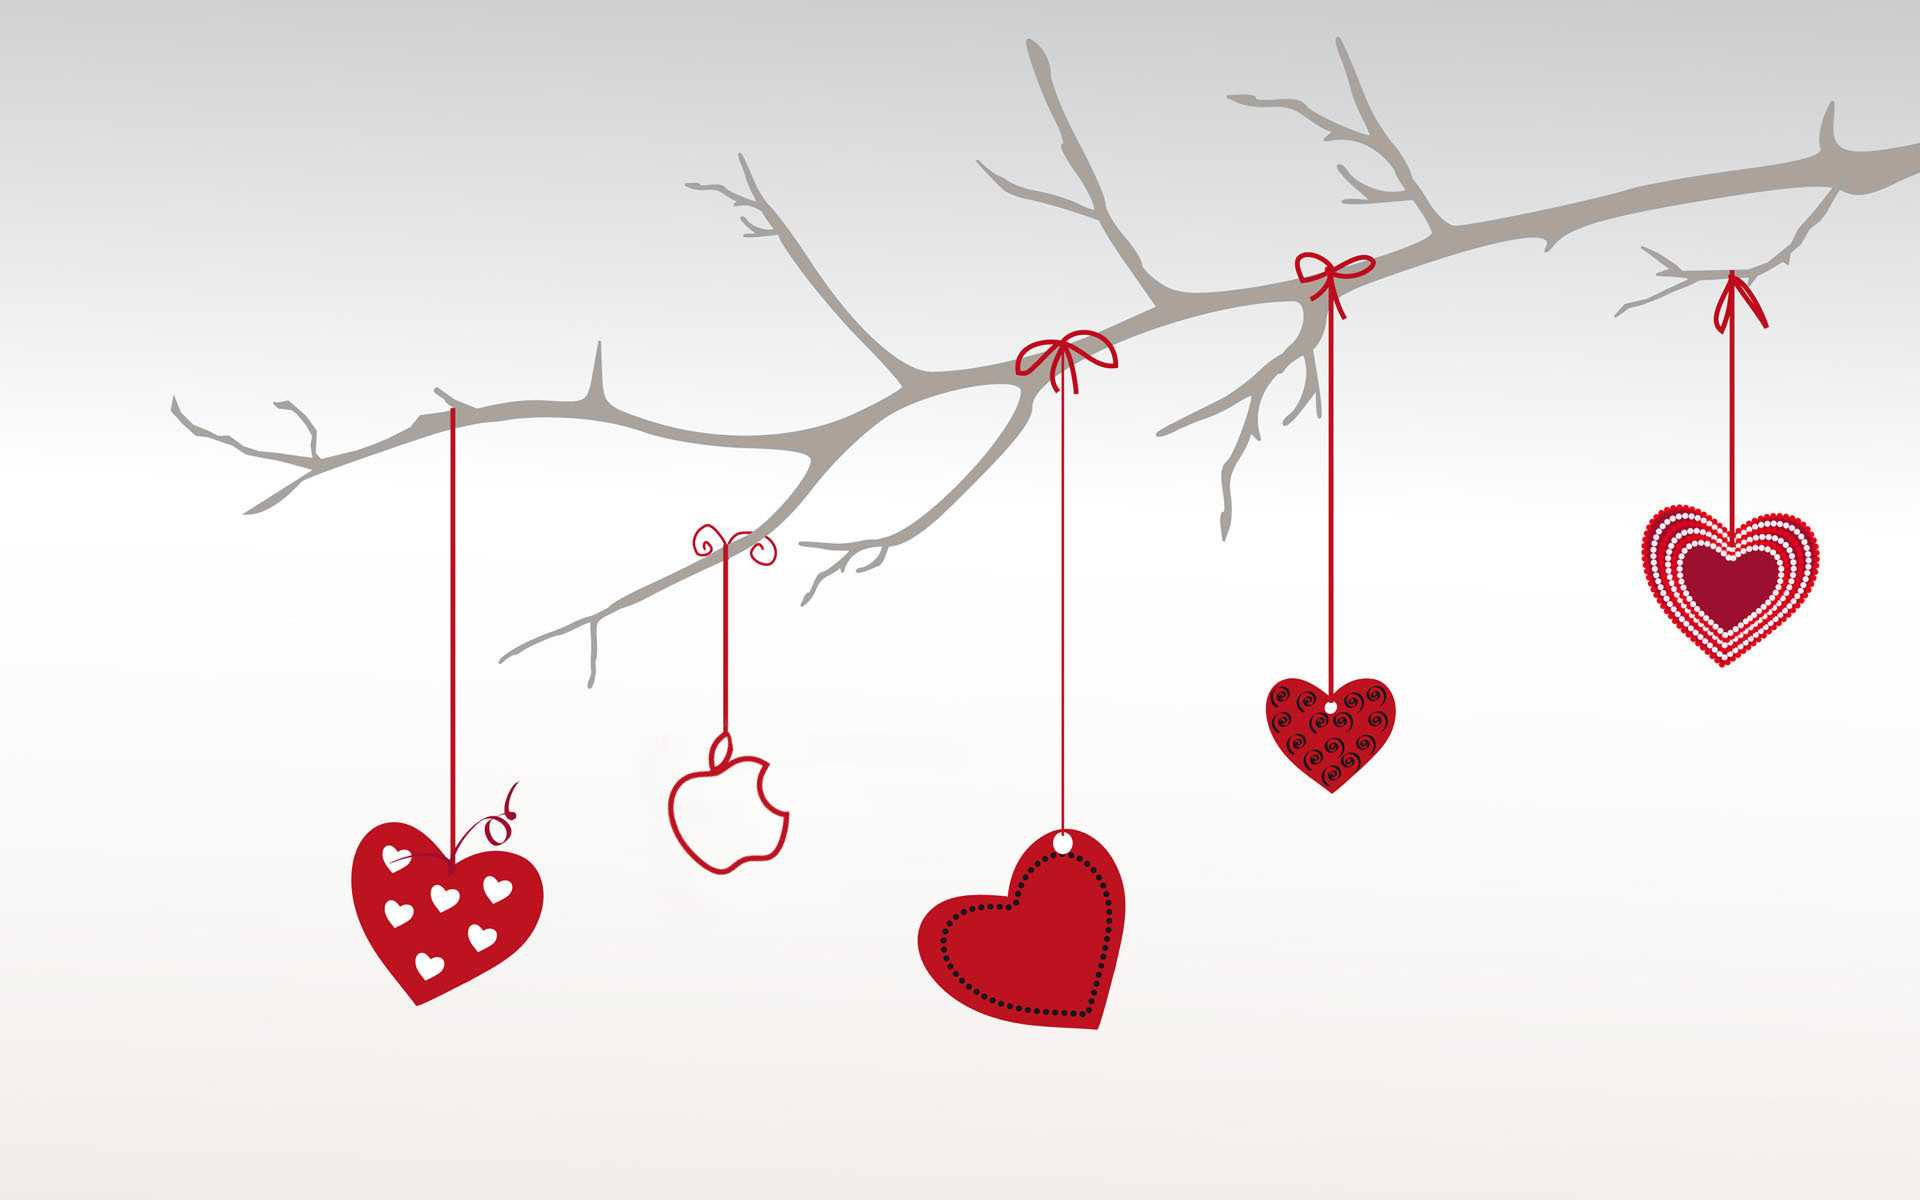 Heart Branch For Valentine Day Backgrounds For Powerpoint inside Valentine Powerpoint Templates Free